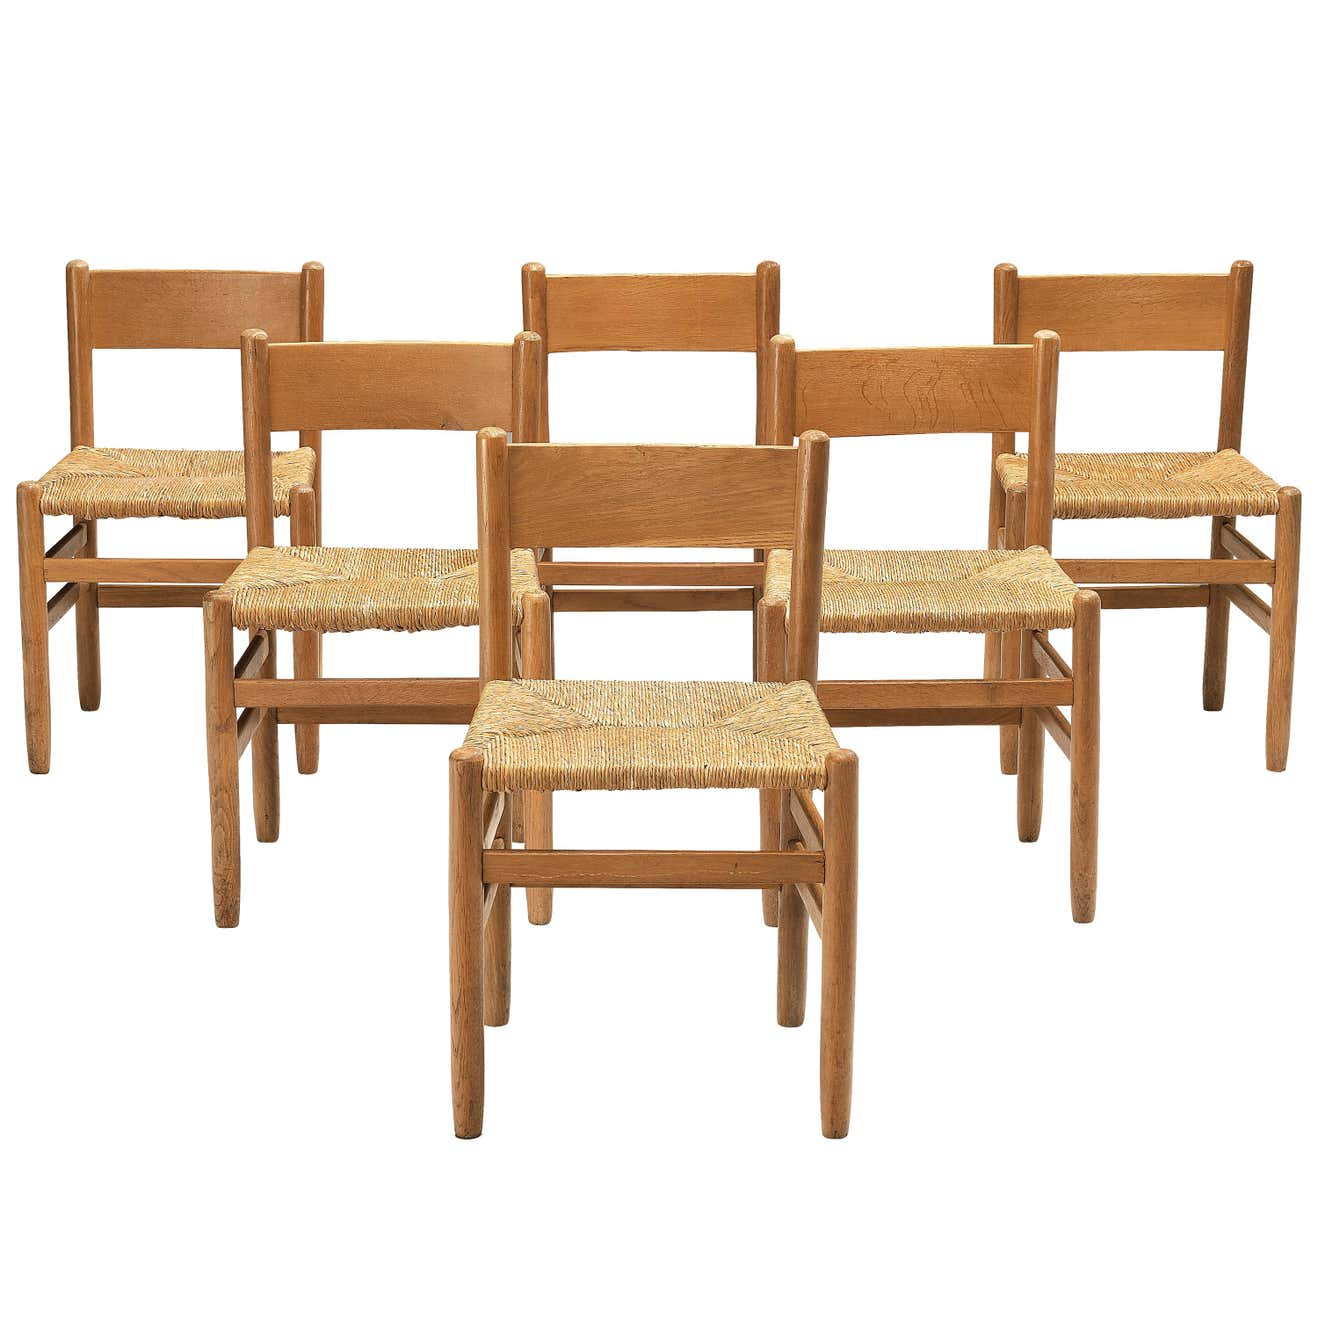 Our Style Director Doesn't Do Dining Room Sets—Try These Chair-and-Table Combos Instead